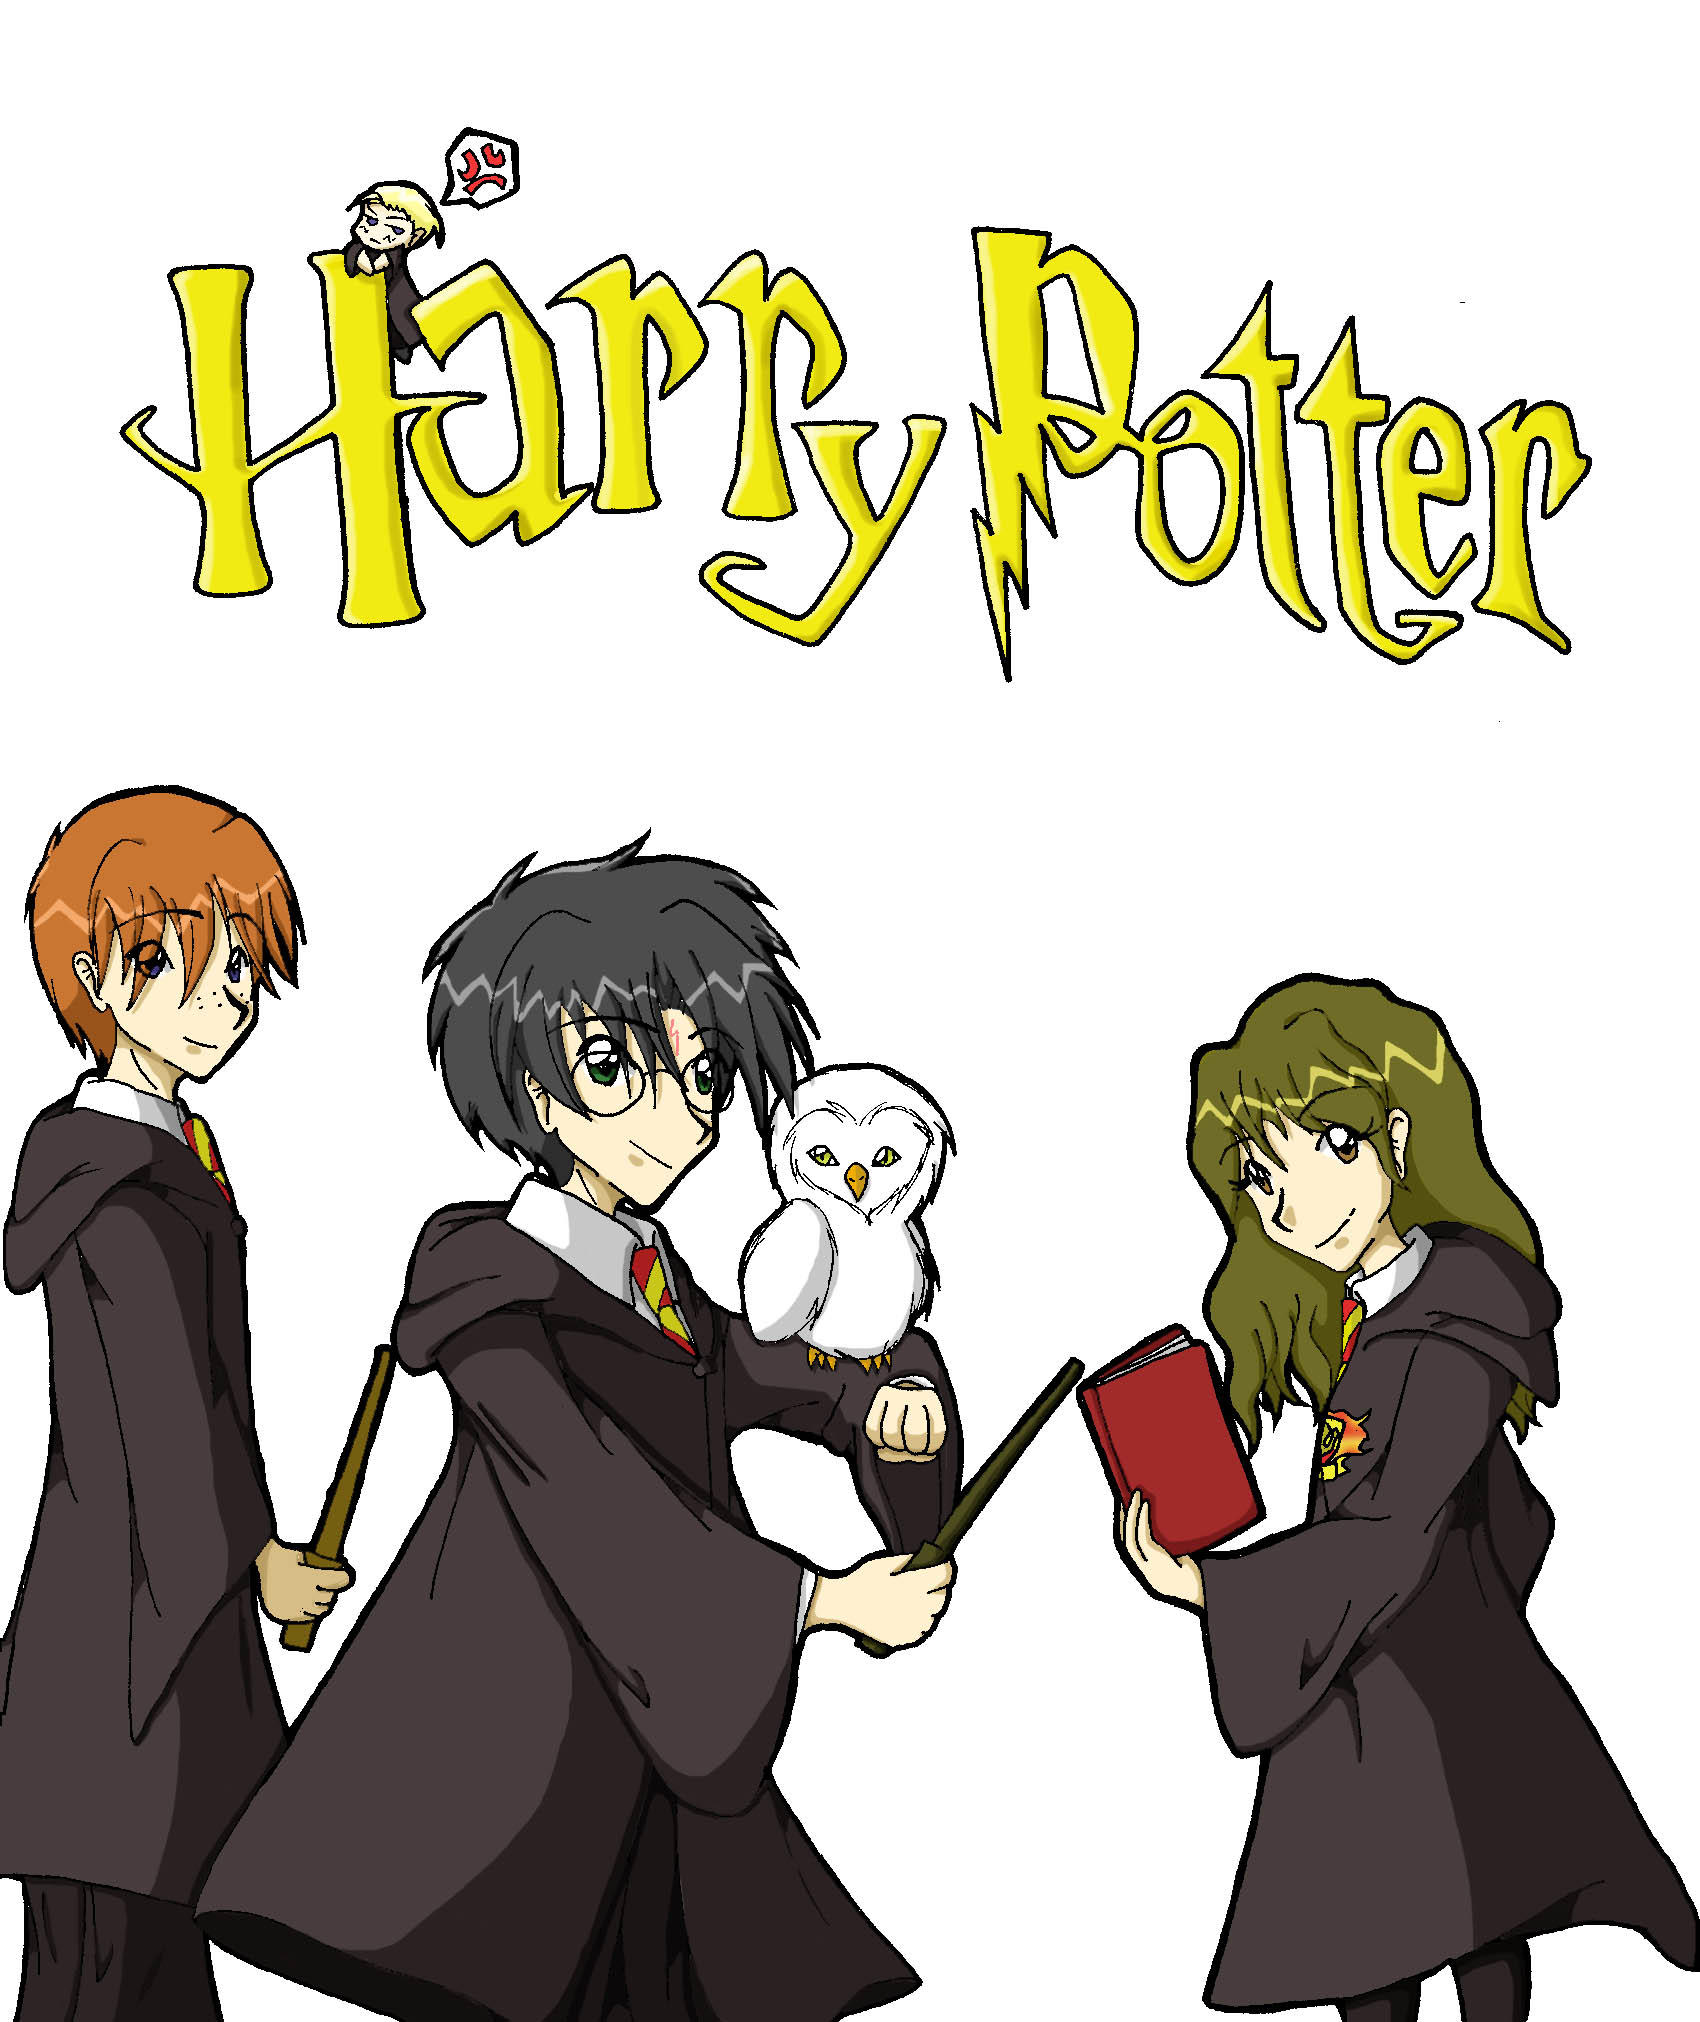 Harry Potter by XaioLoon